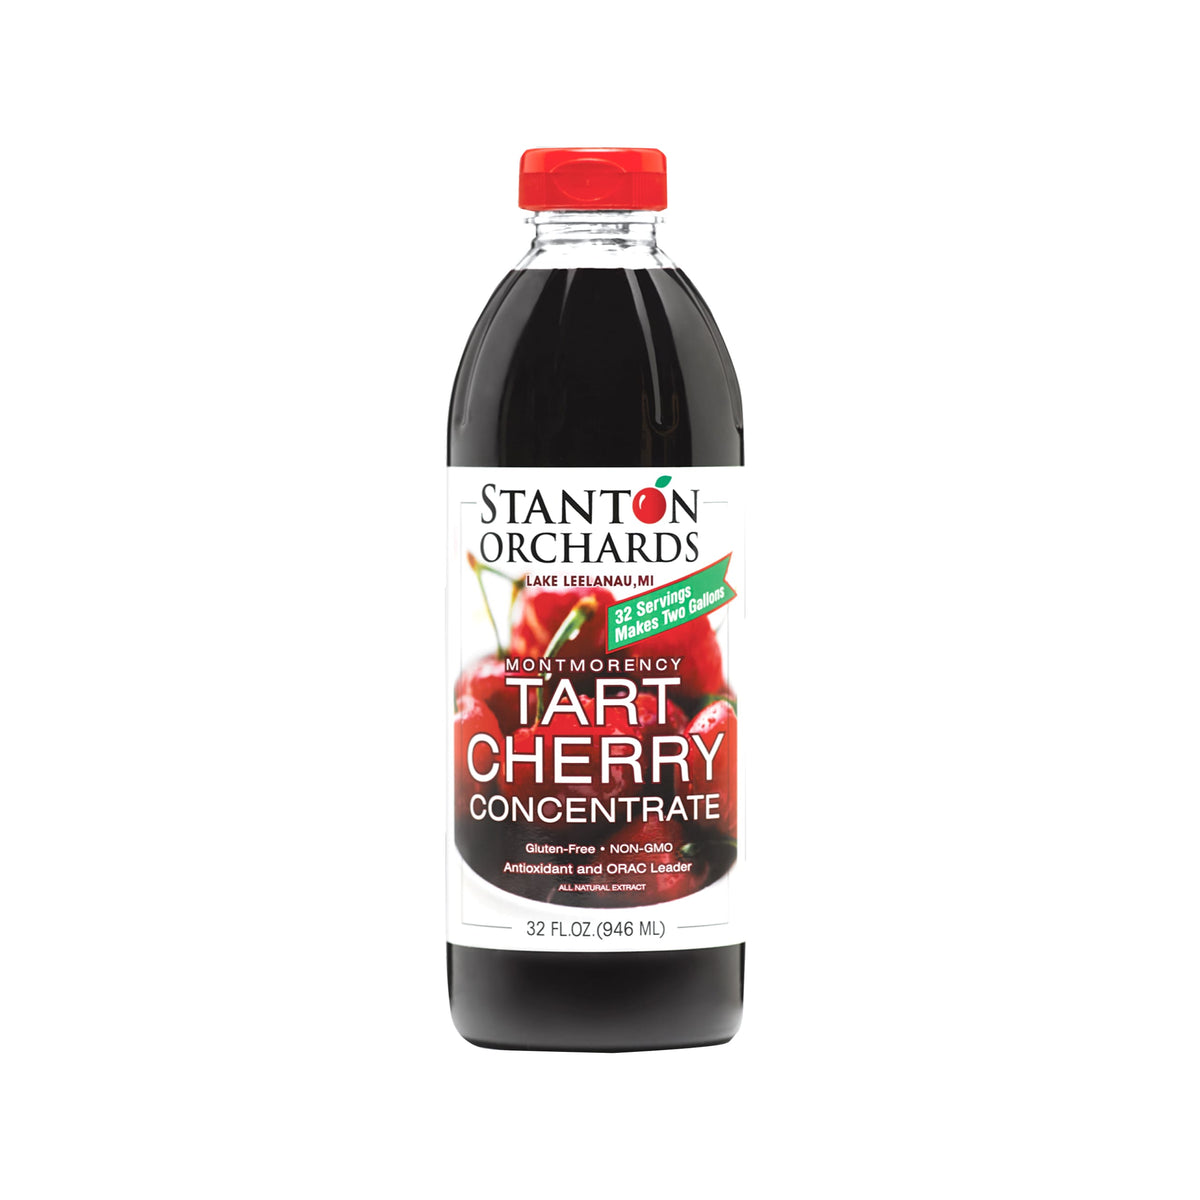 Single 32 oz bottle of Stanton Orchards Montmorency tart cherry concentrate